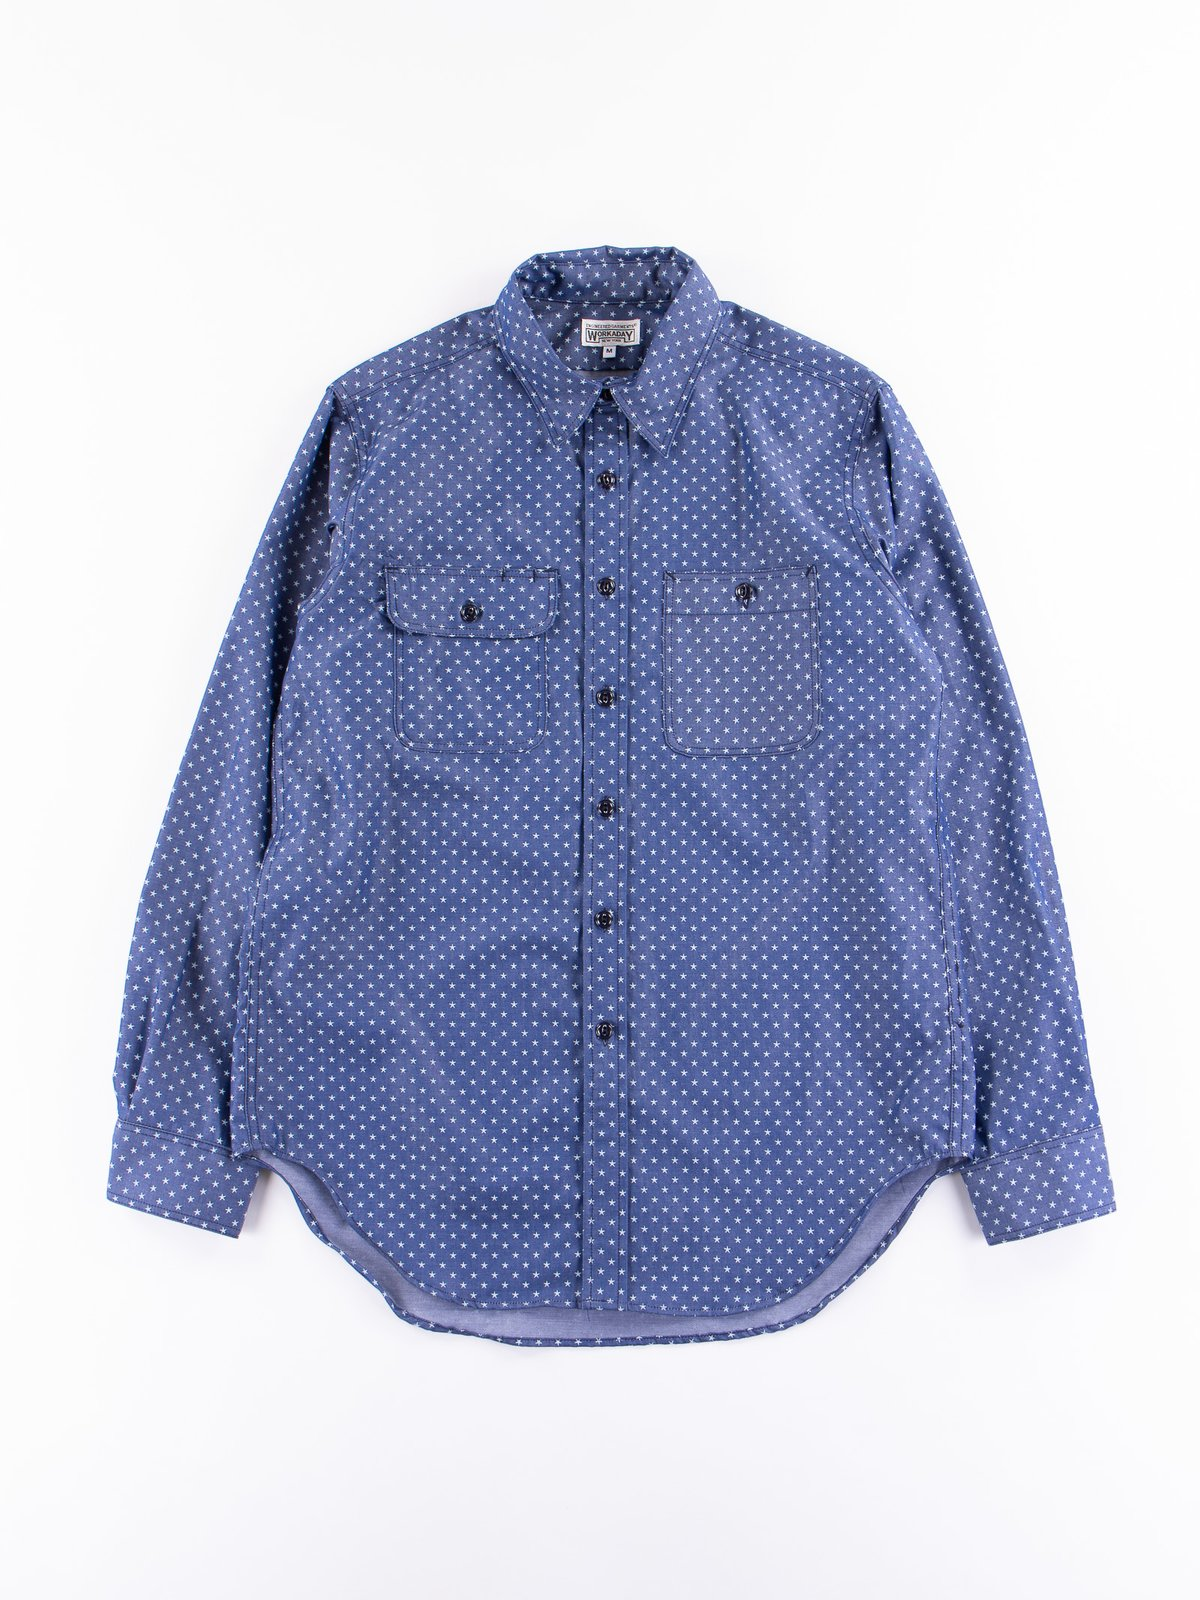 Navy Star Chambray Utility Shirt - Image 1